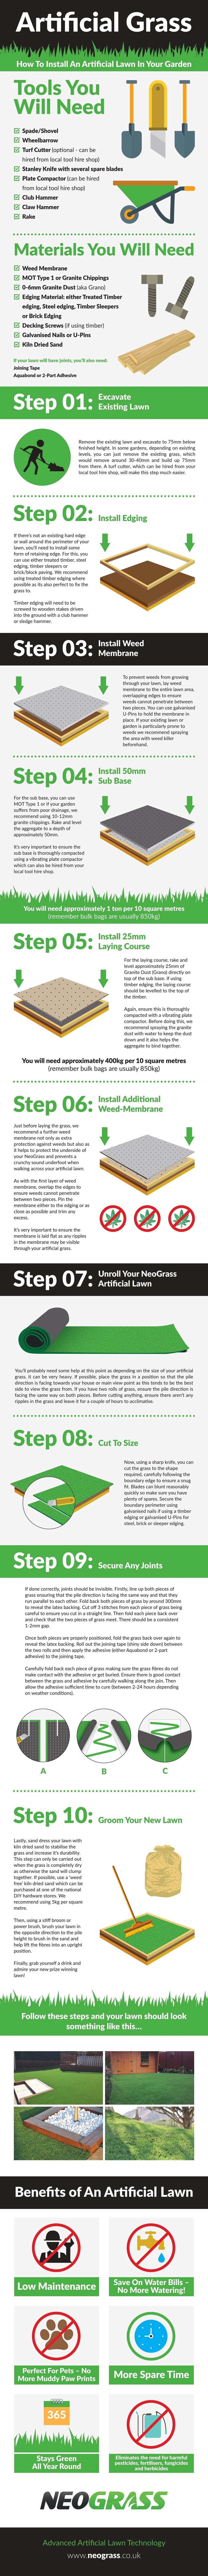 Infographic - How To Install Artificial Grass In Your Garden